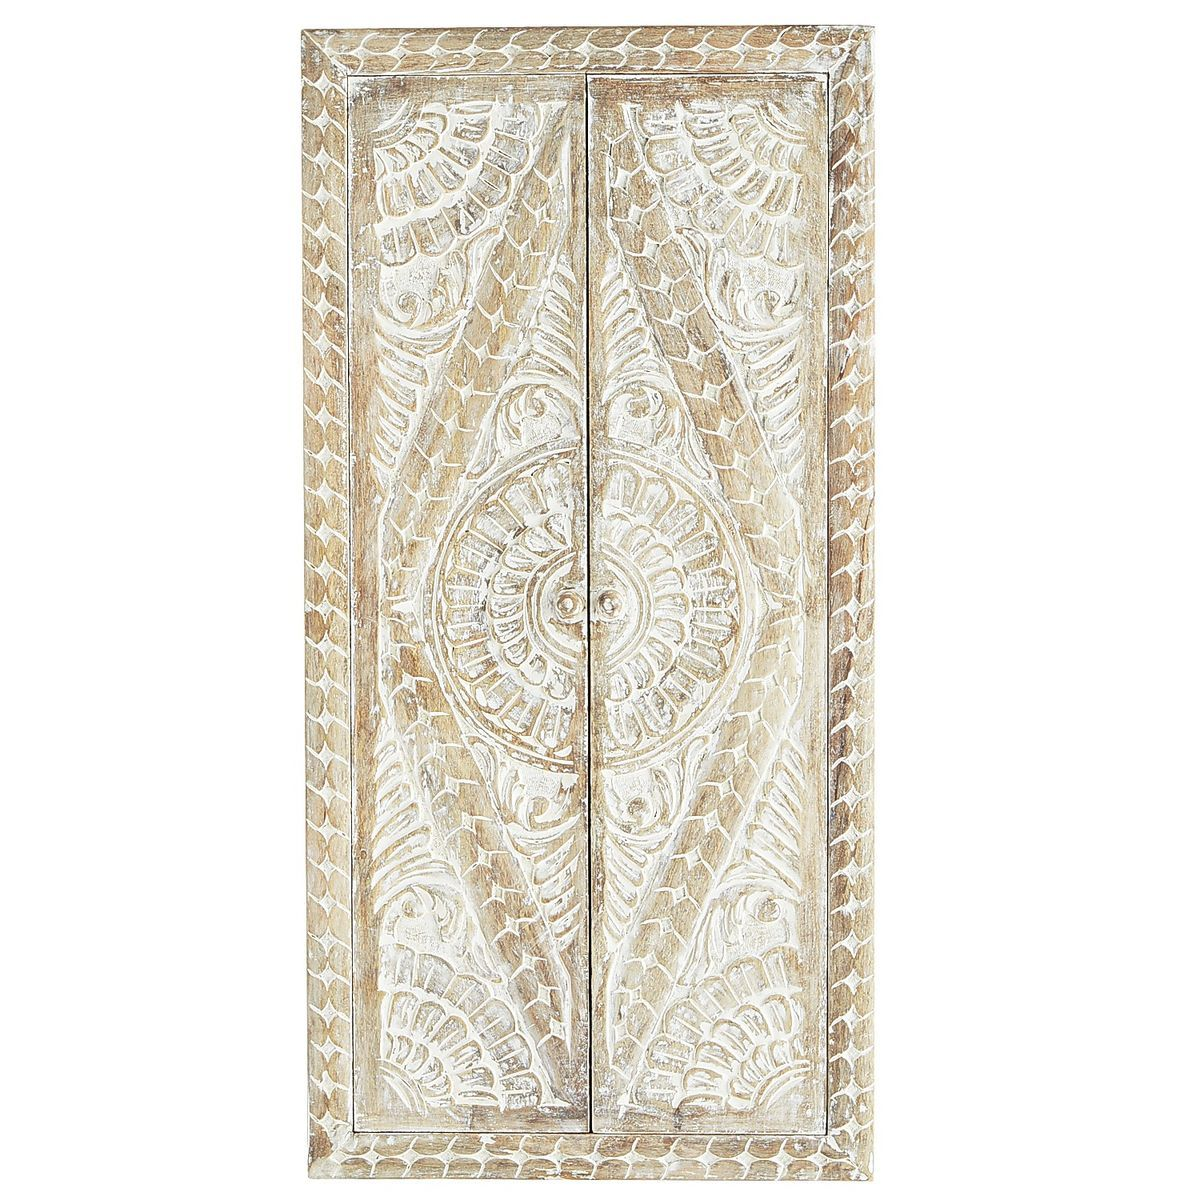 Whitewashed carved wood doors wall decor pier imports ceiling